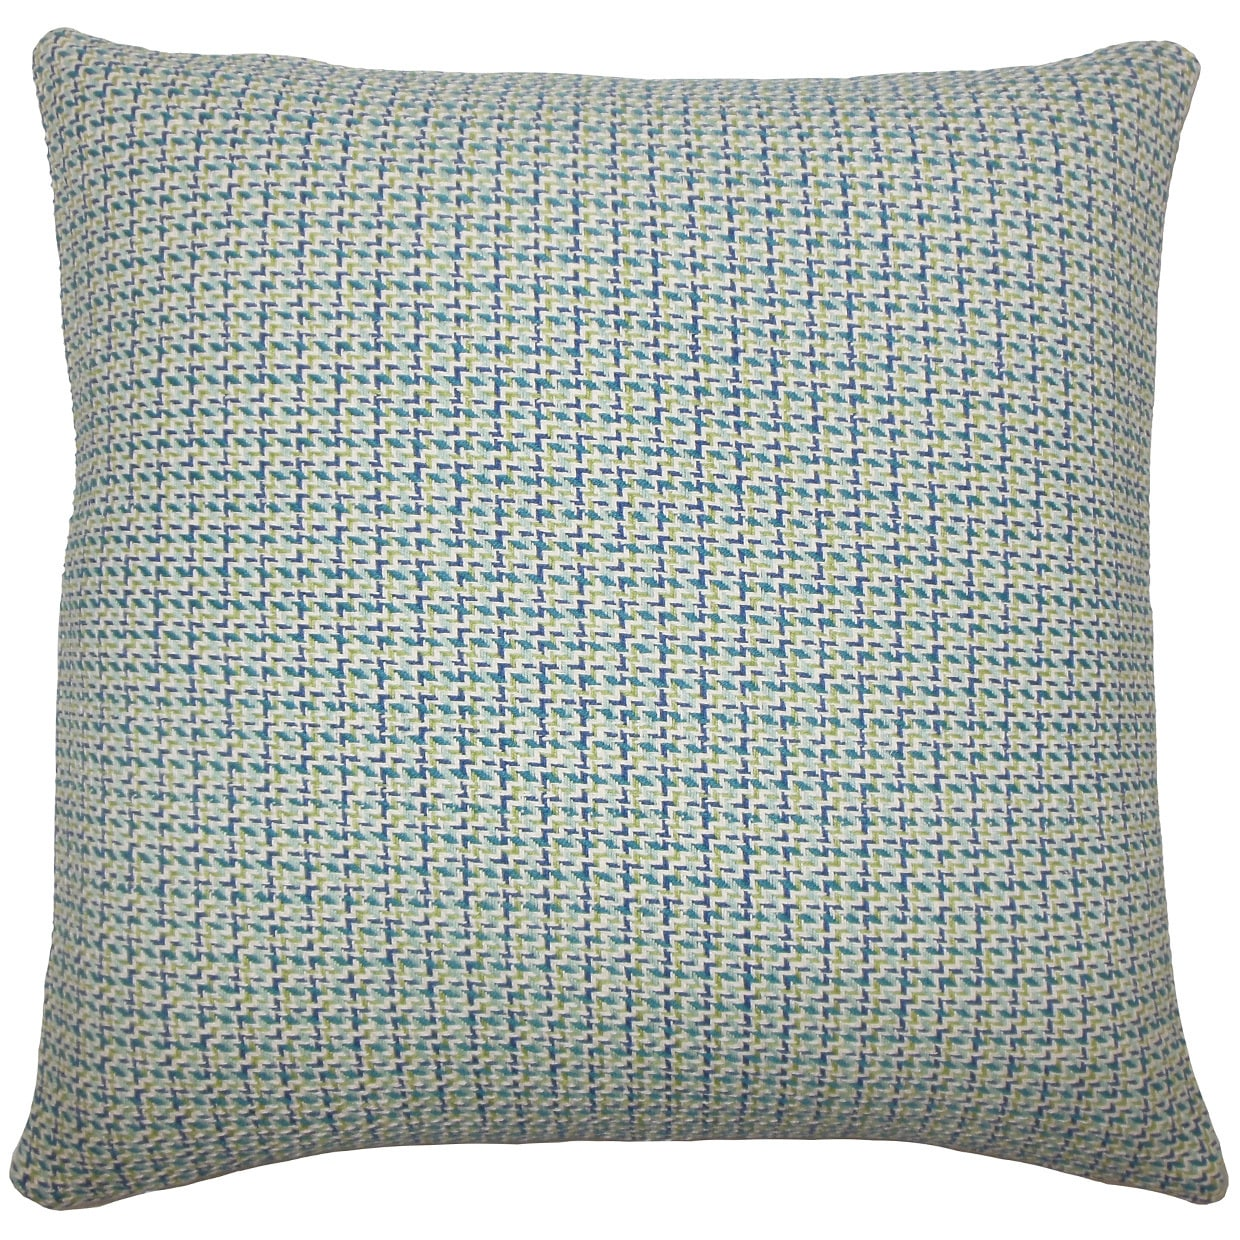 The Pillow Collection Paley Plaid 22-inch Down Feather Throw Pillow Blue Green